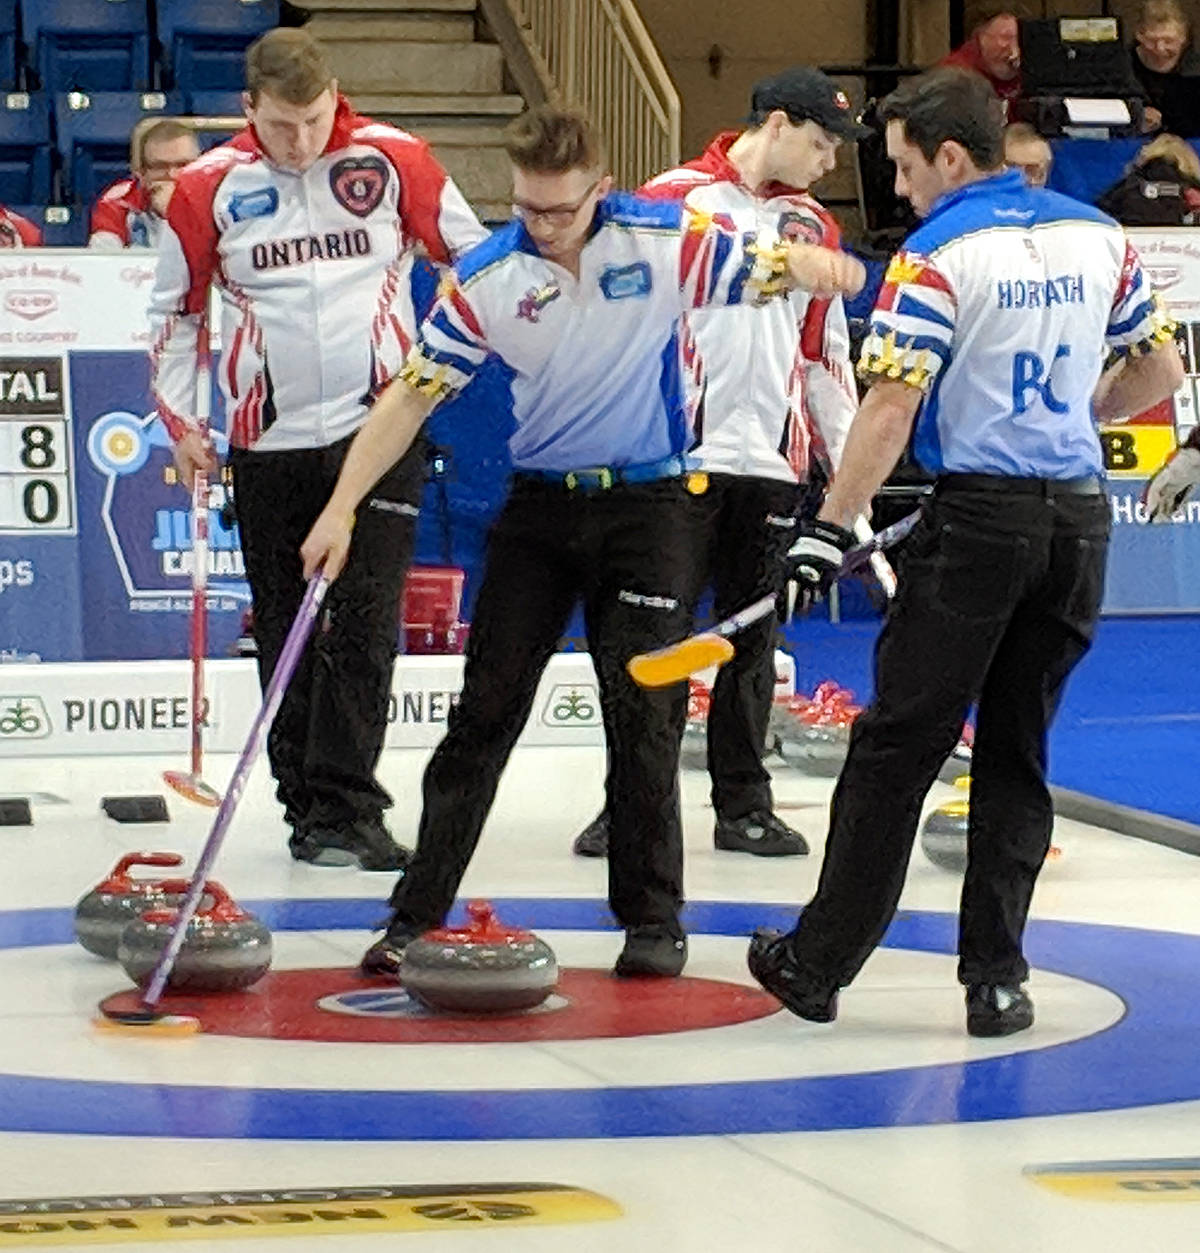 Team BC advancing undefeated in junior nationals